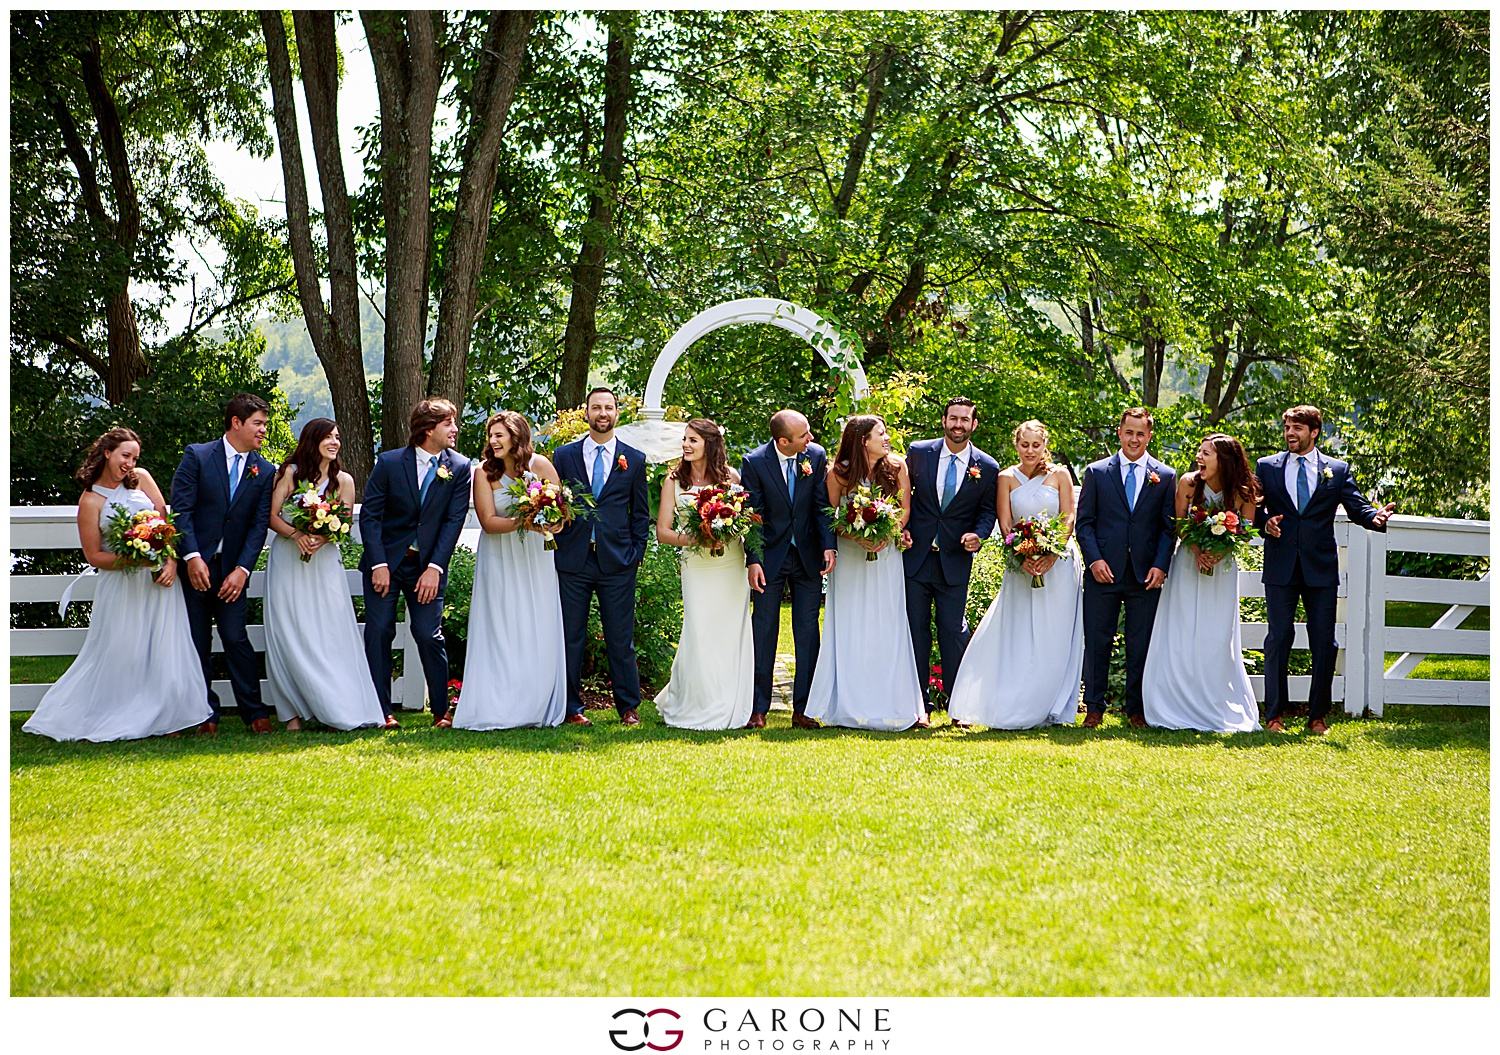 Church_Landing_Garone_Photography_Wedding_Sarah_Patrick_0011.jpg